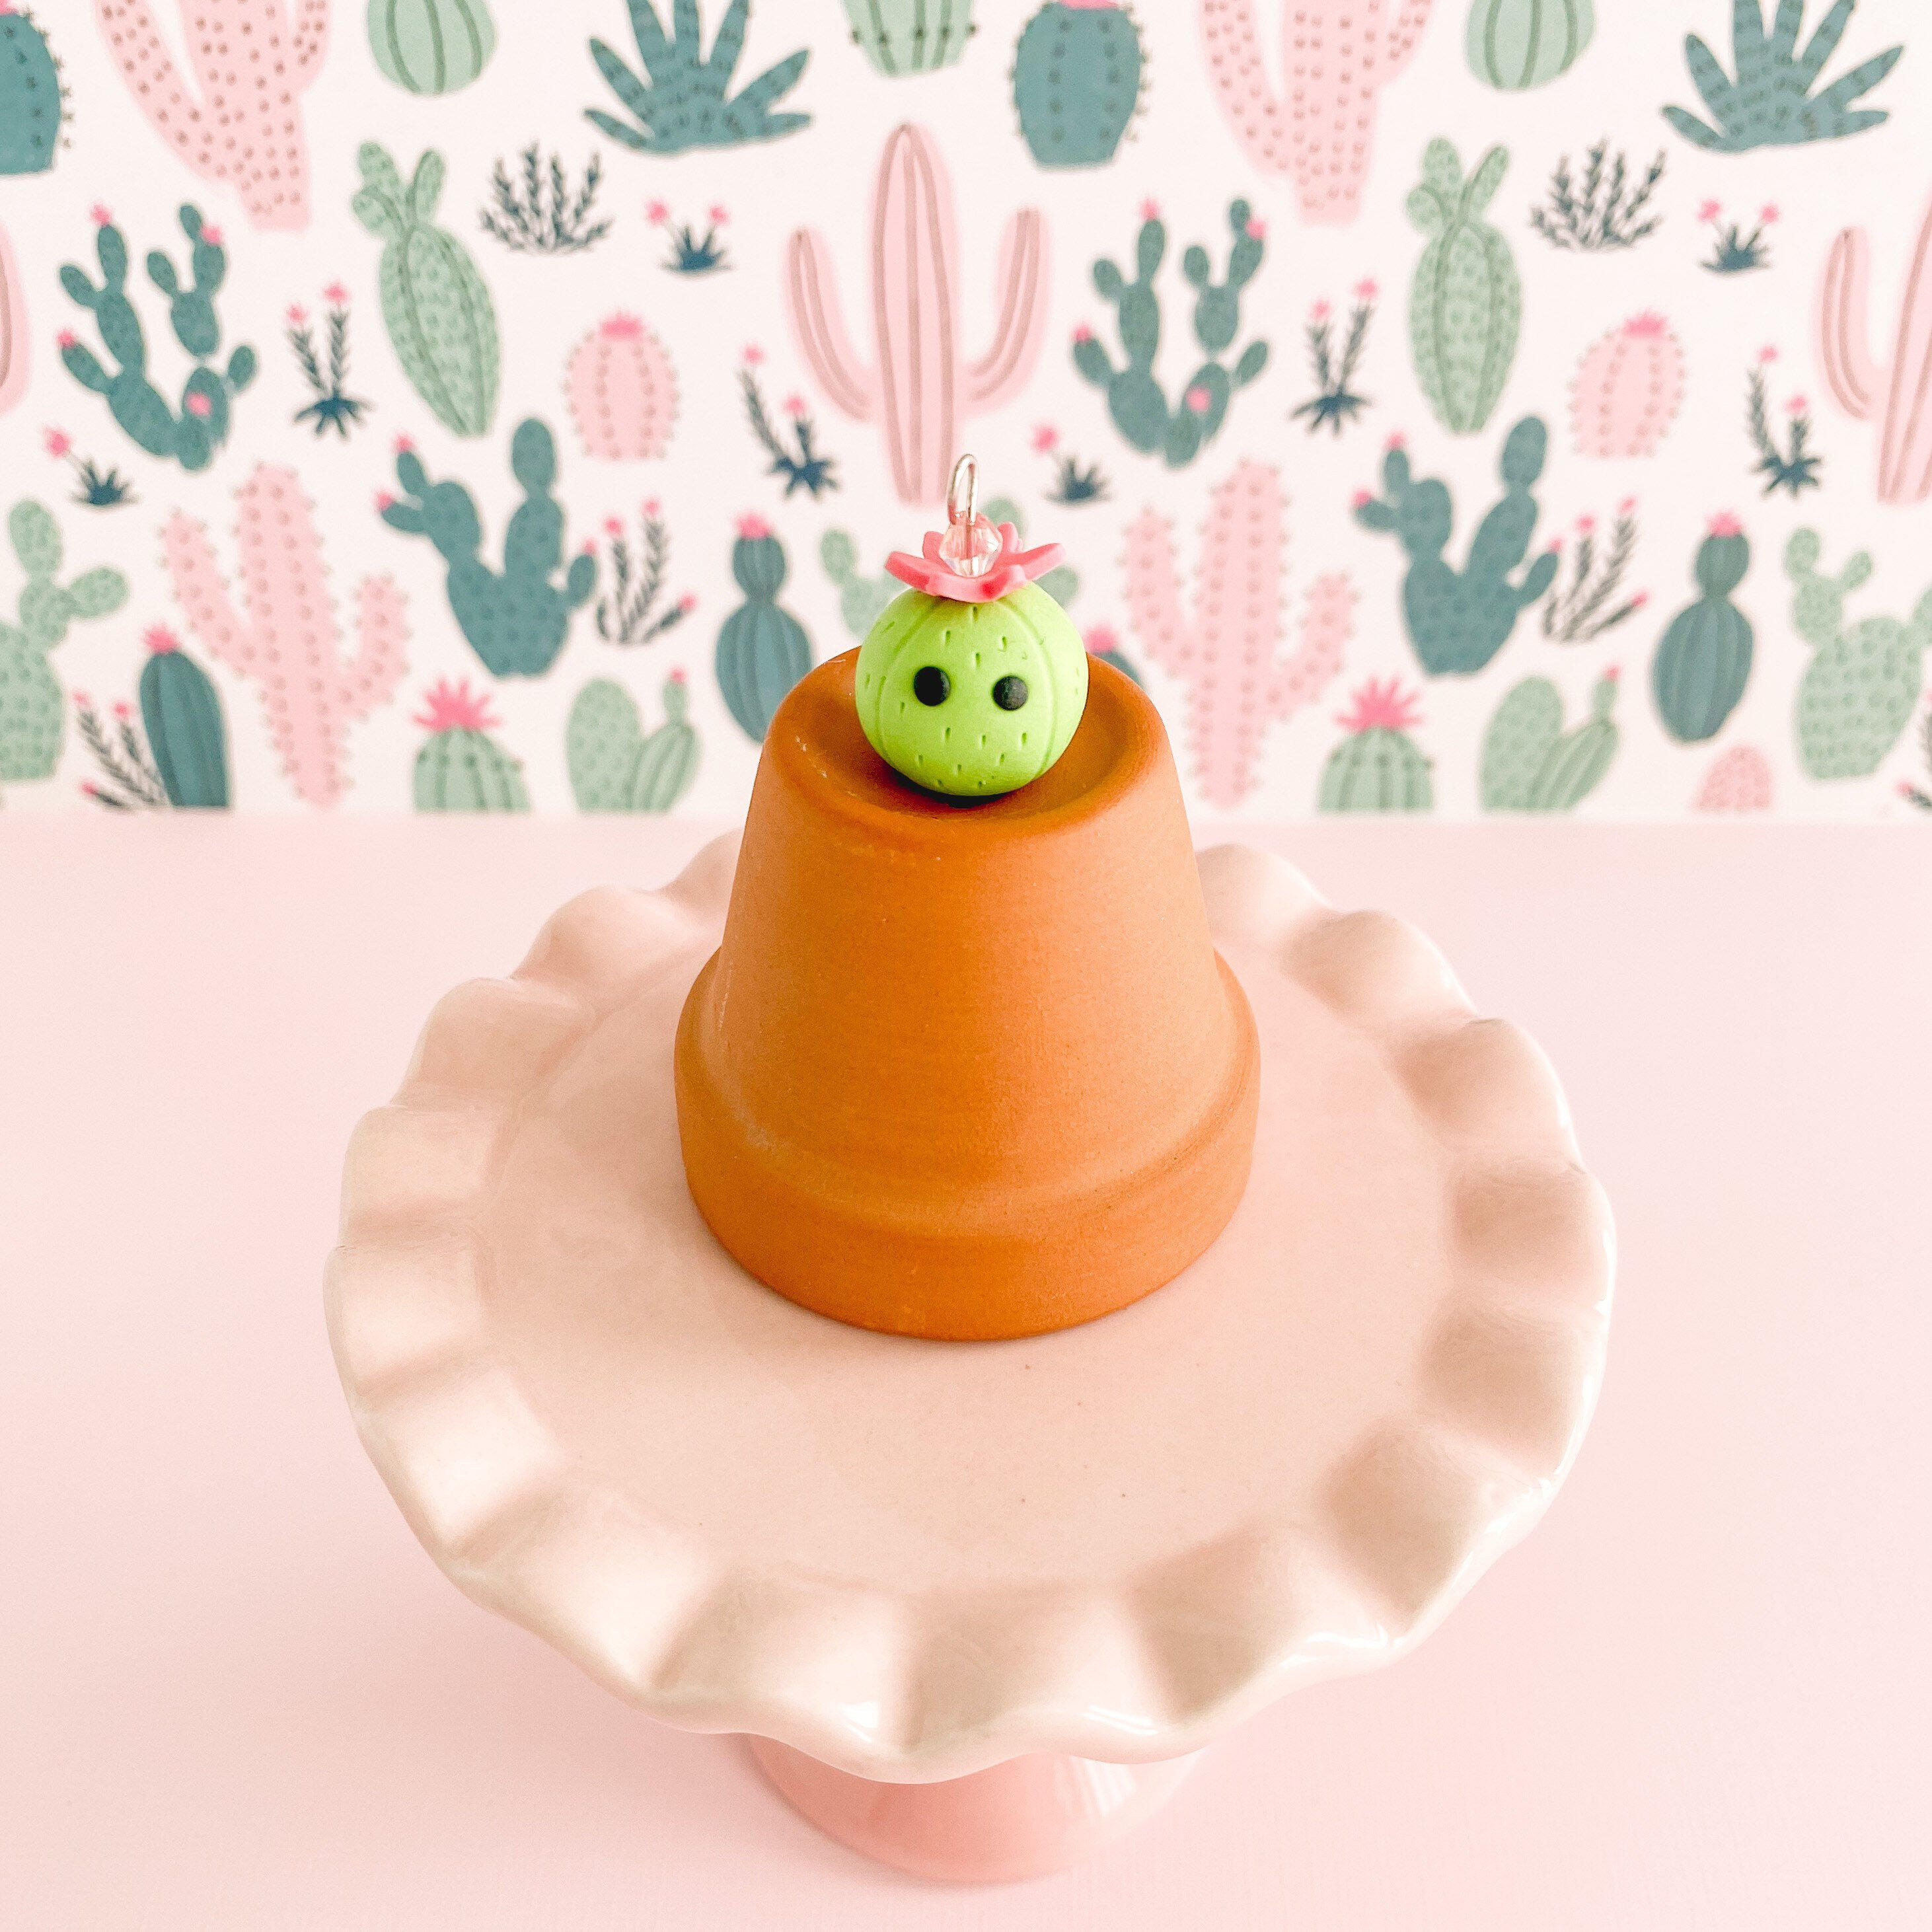 fireflyFrippery Cute Cactus Charm with Flower on top of Miniature Terra Cotta Pot on Pink Display